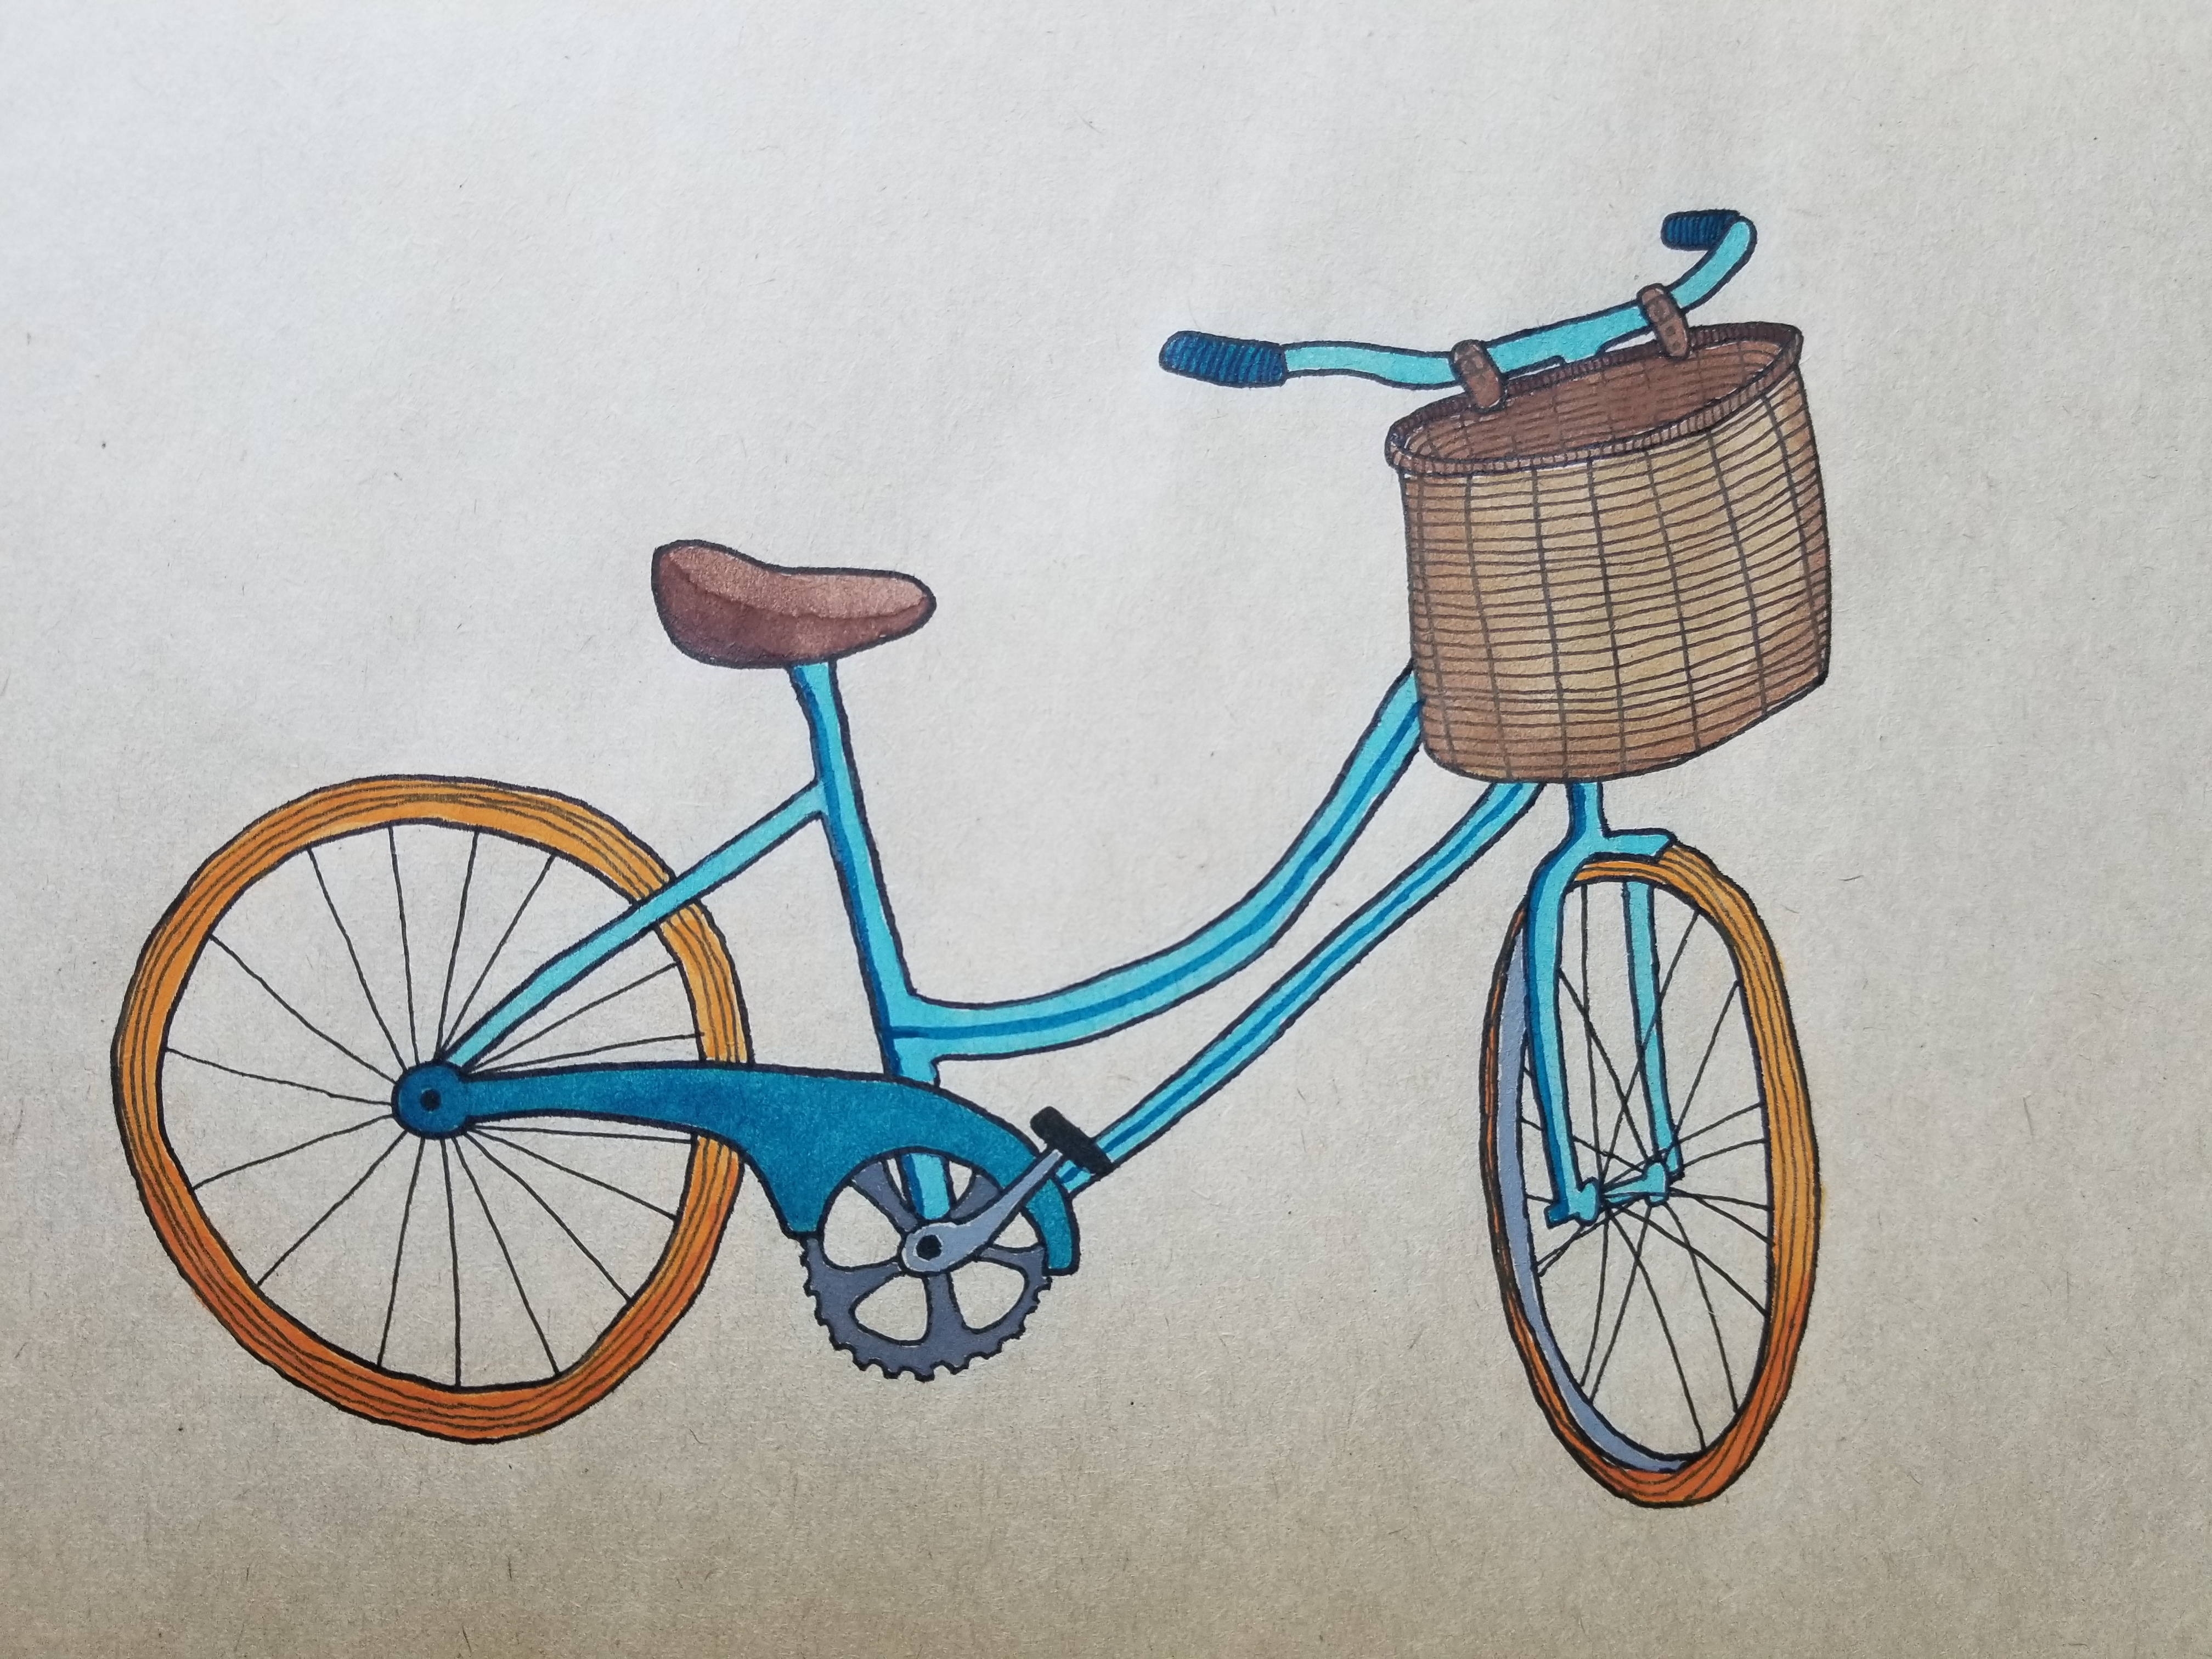 Adelaide Seemiller, Quirky Bicycle